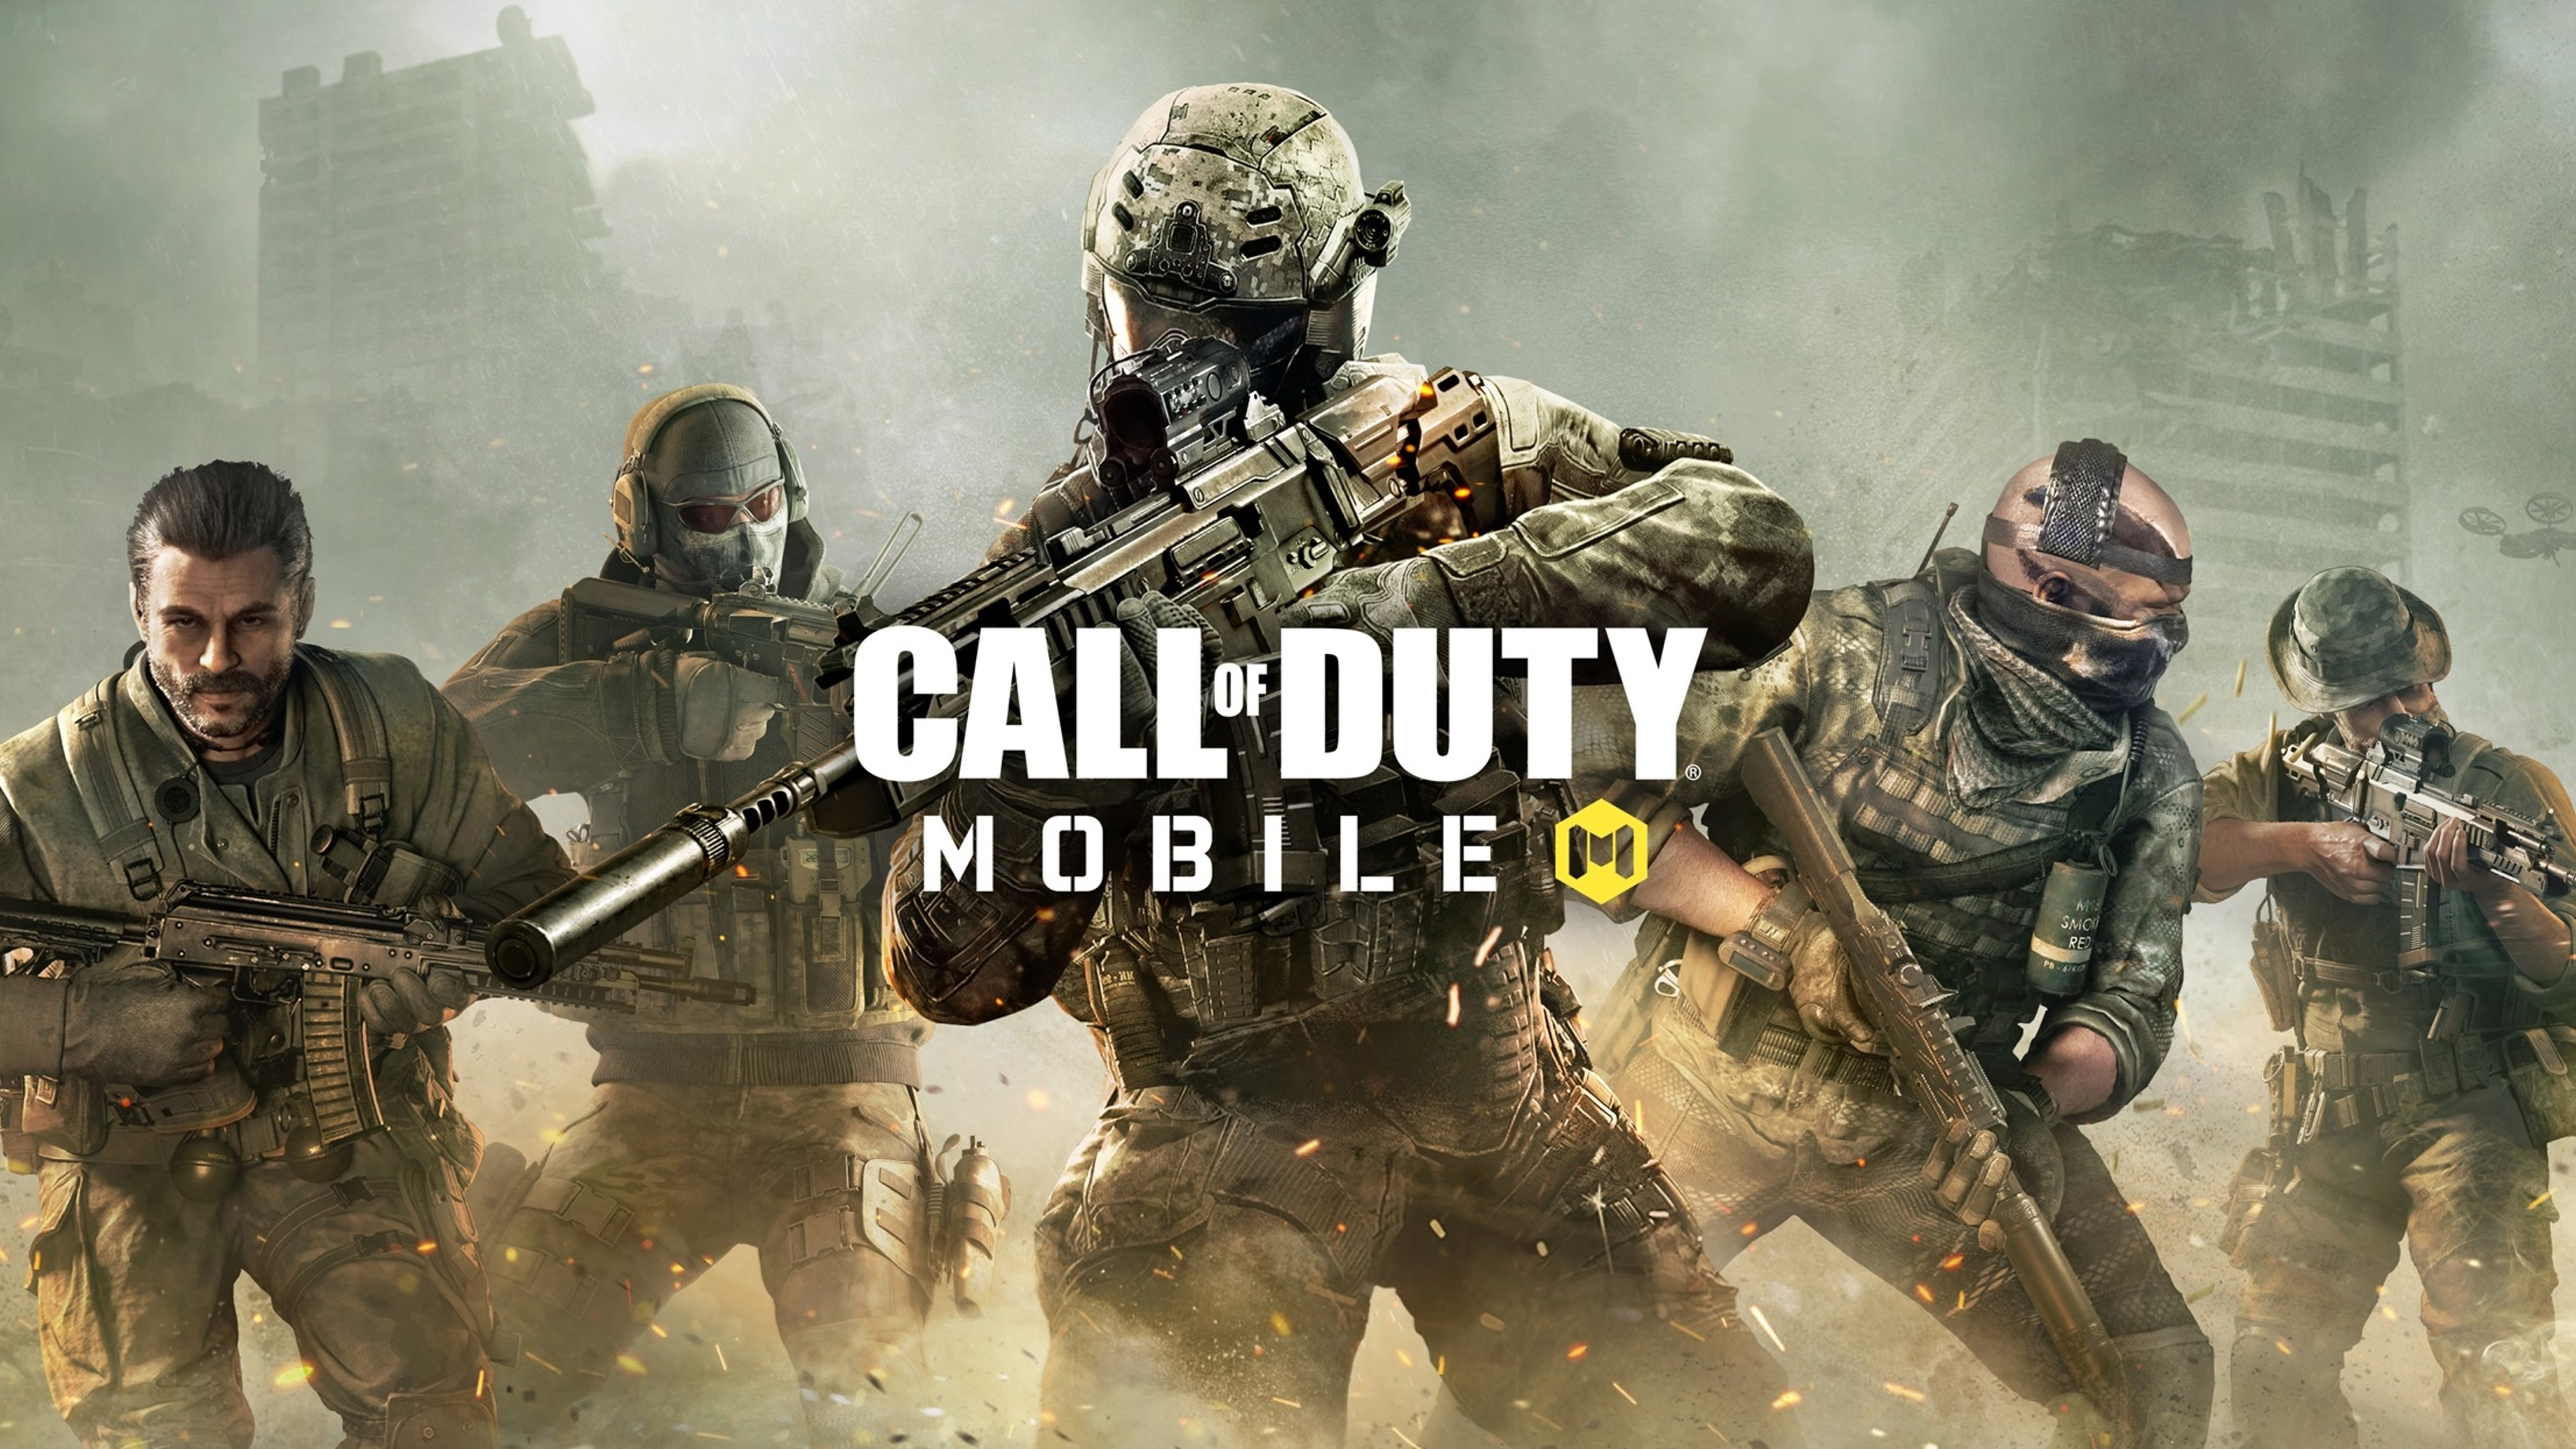 5120x2880 Call Of Duty Mobile Game 5K Wallpaper HD Games 4K 5120x2880